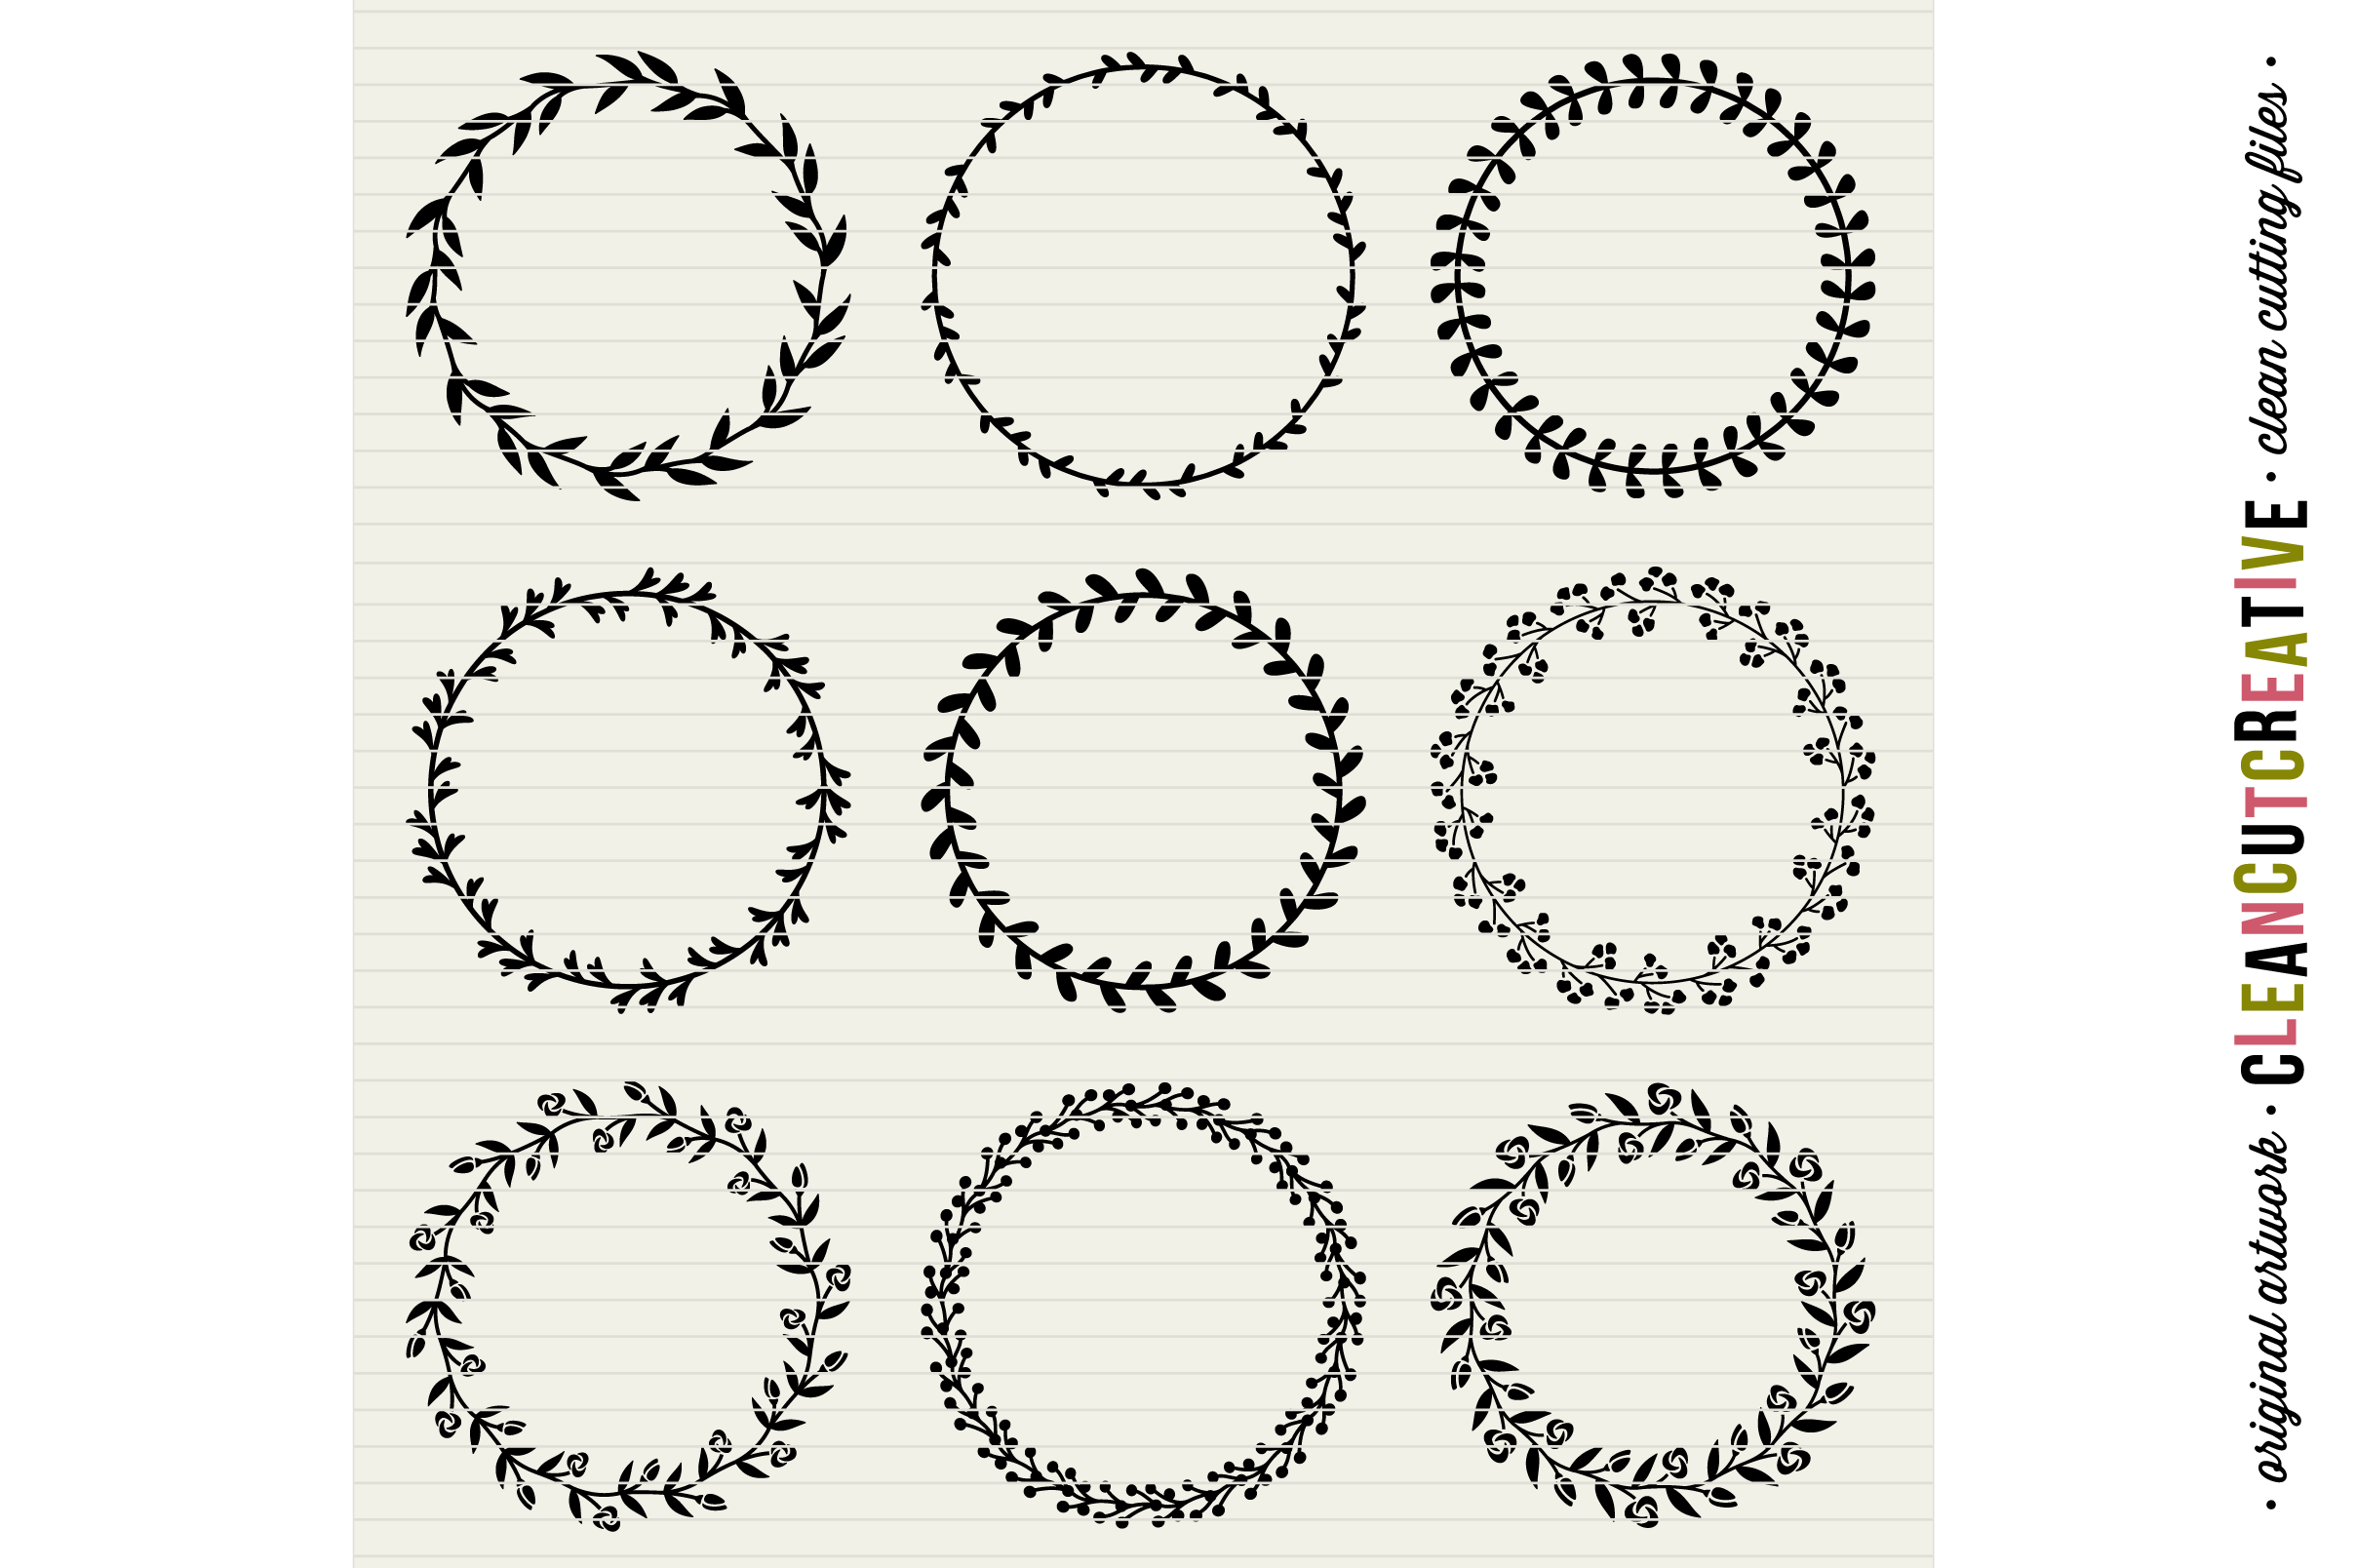 FLORAL MEGA BUNDLE 30 wreaths, laurels and hearts leaf frames - SVG DXF EPS PNG - for Cricut and Silhouette Cameo - clean cutting digital files example image 3